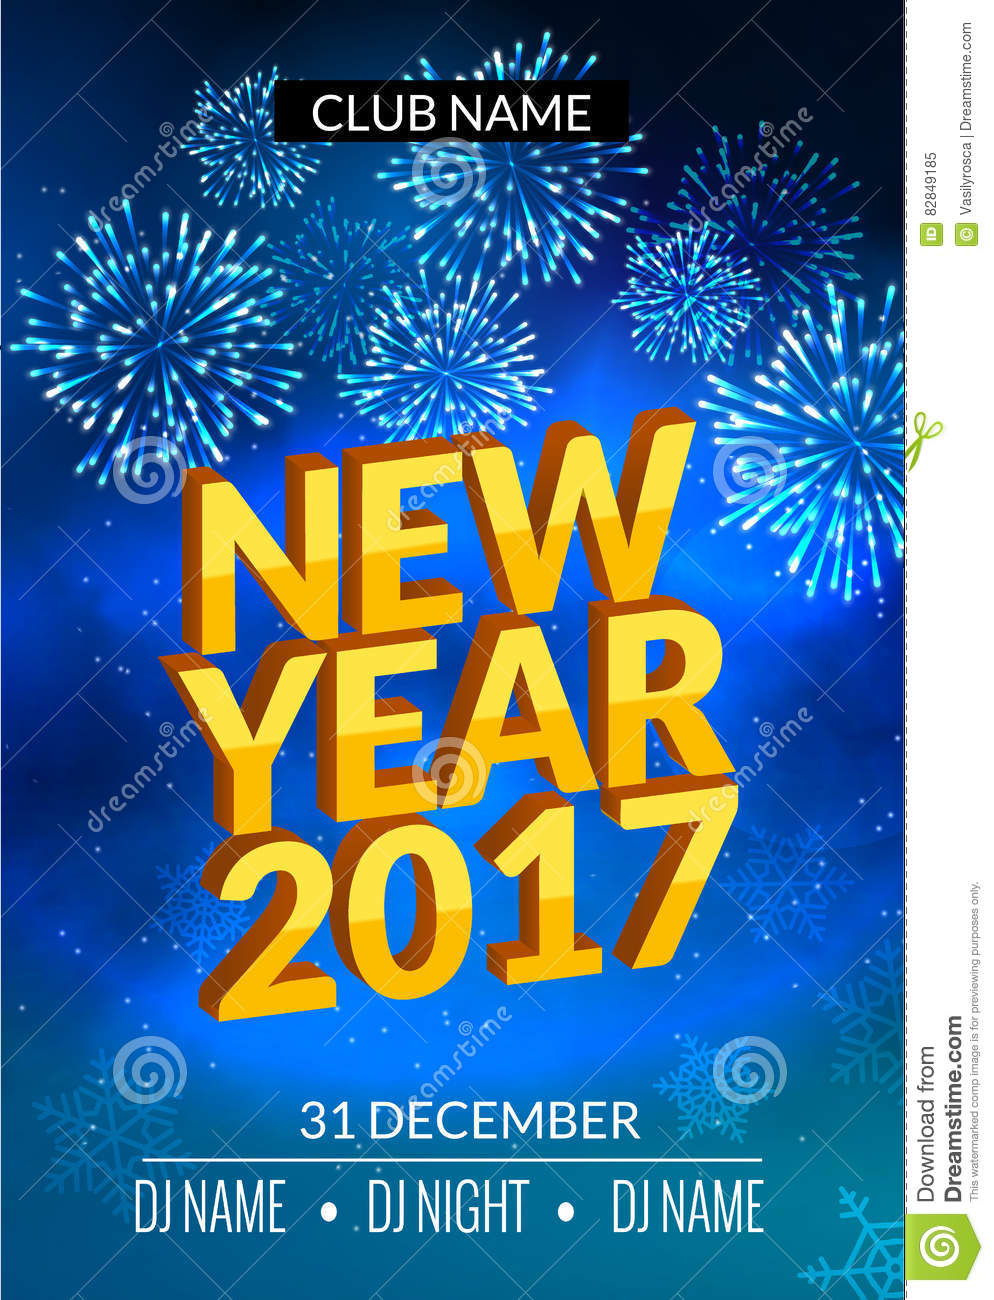 Download New Year Party Poster Design With Fireworks Light. New Year Disco Flyer  Template.